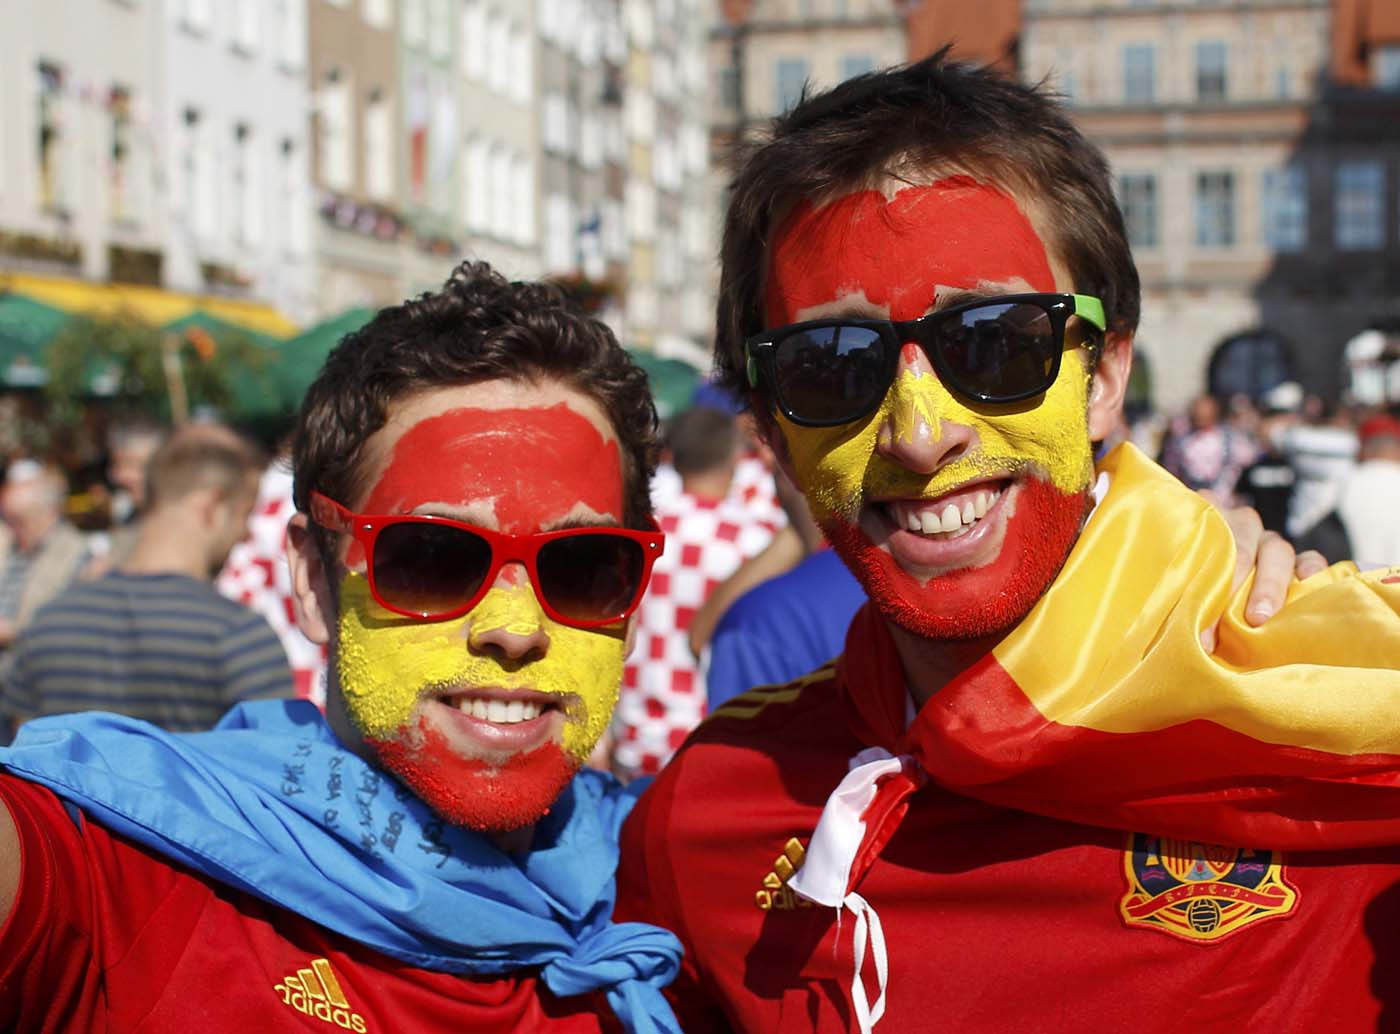 Spanish fans cheer before Euro 2012 soccer match against Croatia in the Old Town of Gdansk June 18, 2012. (Peter Andrews/Reuters)